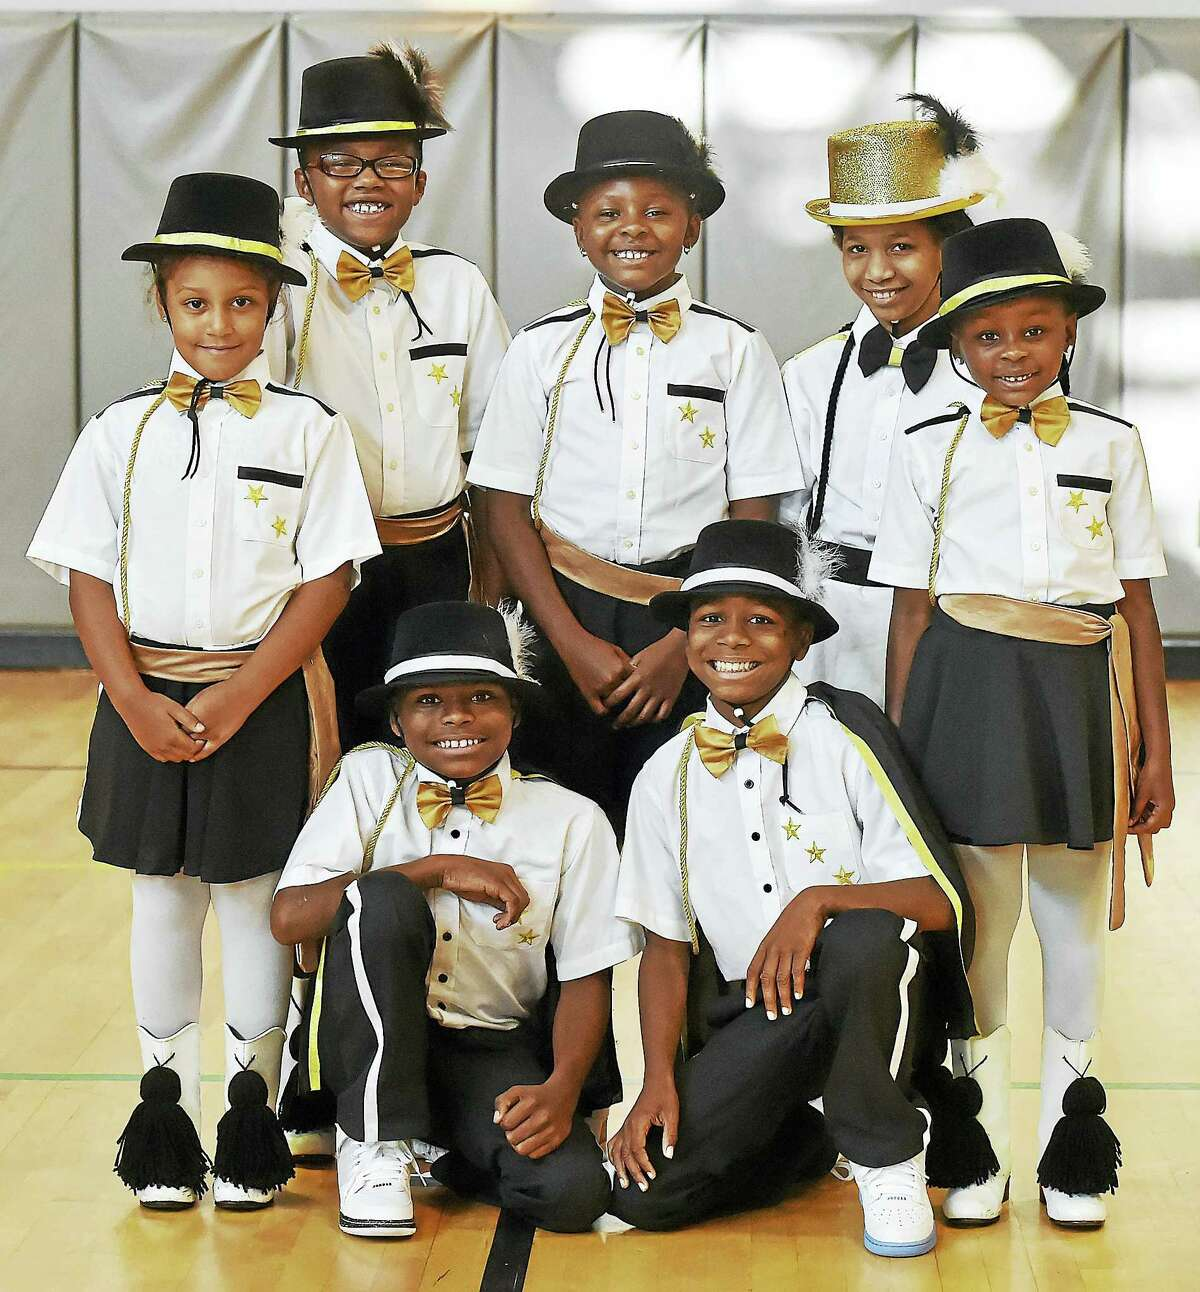 Members of the New Haven Stylettes Midget Drill Team & Drum Corp, Omarion Herbert, 11, Damarion Herbert, 11, front row, left to right, and Leilani Buser, 8, Khaylese Random, 9, Jada Morant, 8, Sanai Berrios, 10, and Jalin Morant, 5, back row, left to right, gathered Thursday, September 1, 2016, at the L.W. Beecher Museum Magnet School for a photograph after placing first in the midget division on August 16, 2016 at the Elks Grand Lodge World National Competition in New Orleans, Louisiana. The Midget Stylettes are under the direction of Latasha Royal.